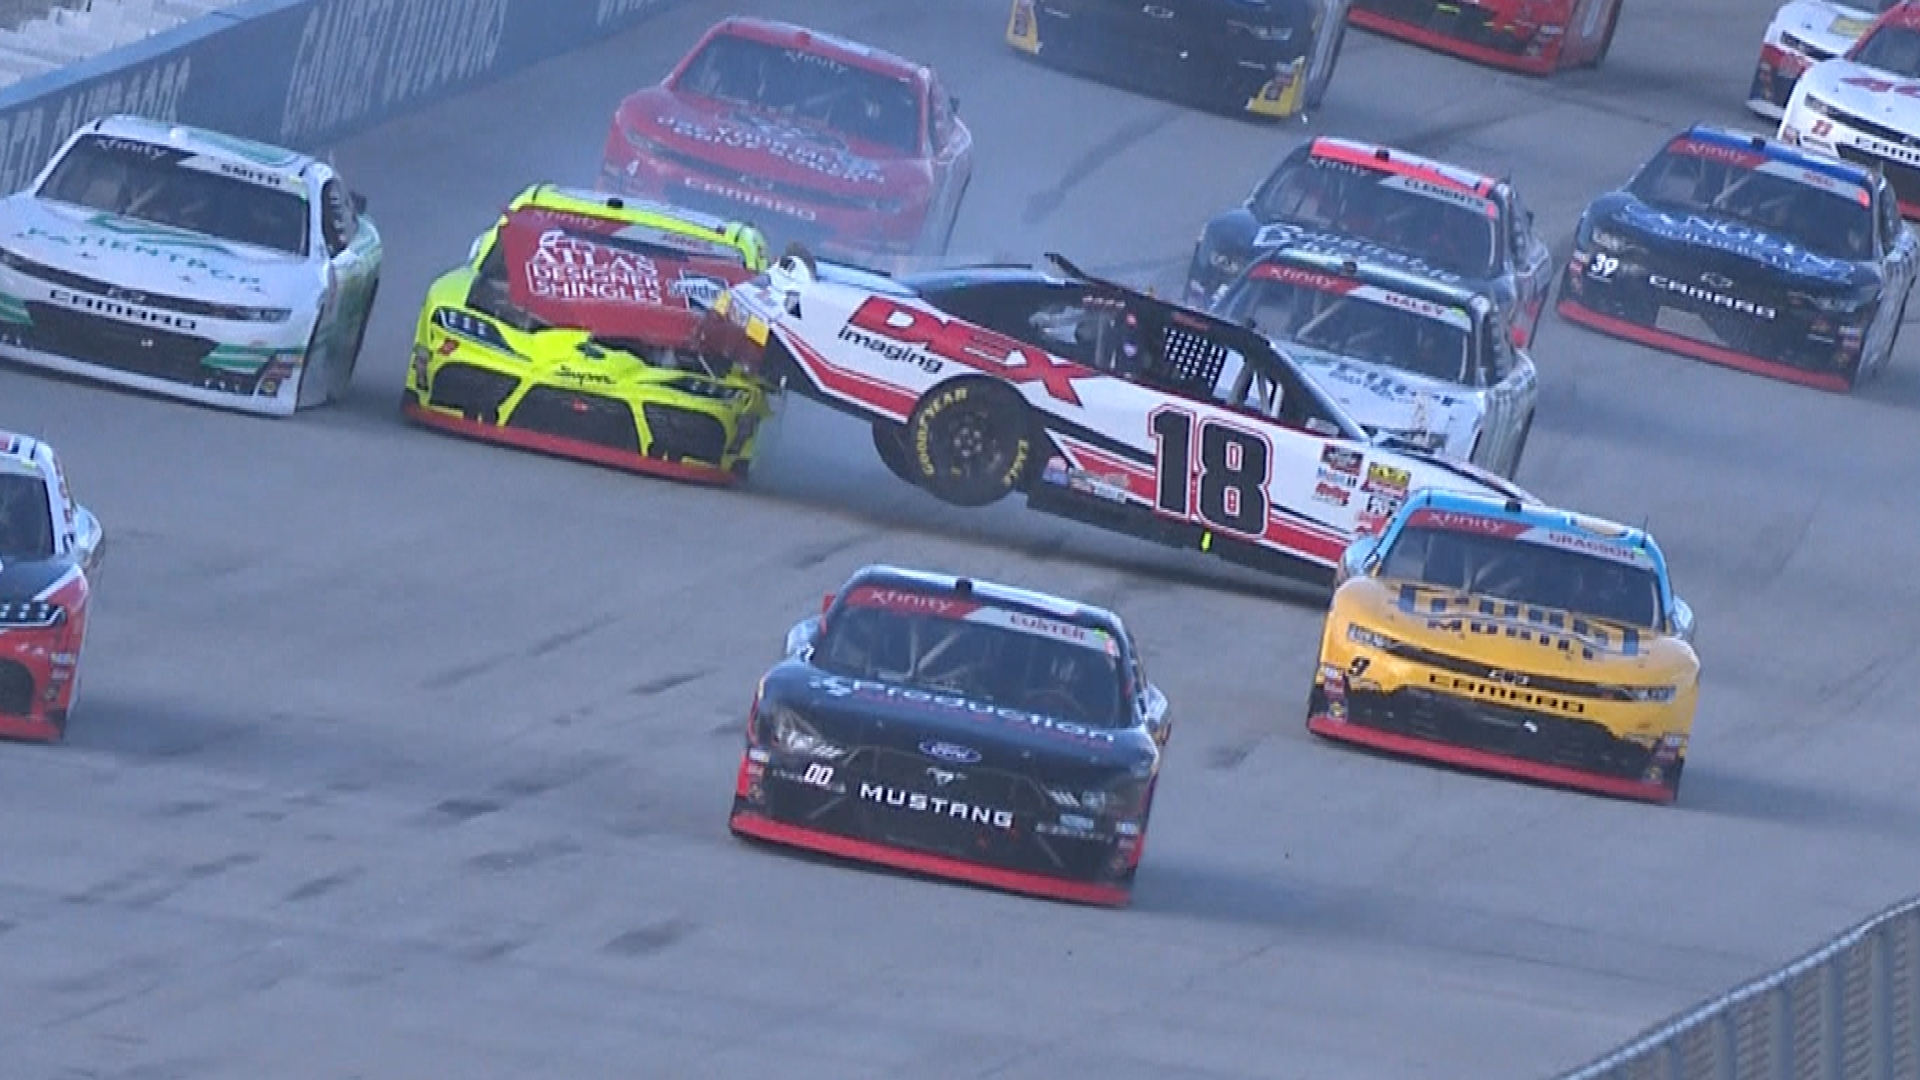 Brandon Jones, Harrison Burton wreck at Dover during Lap 1 of Xfinity